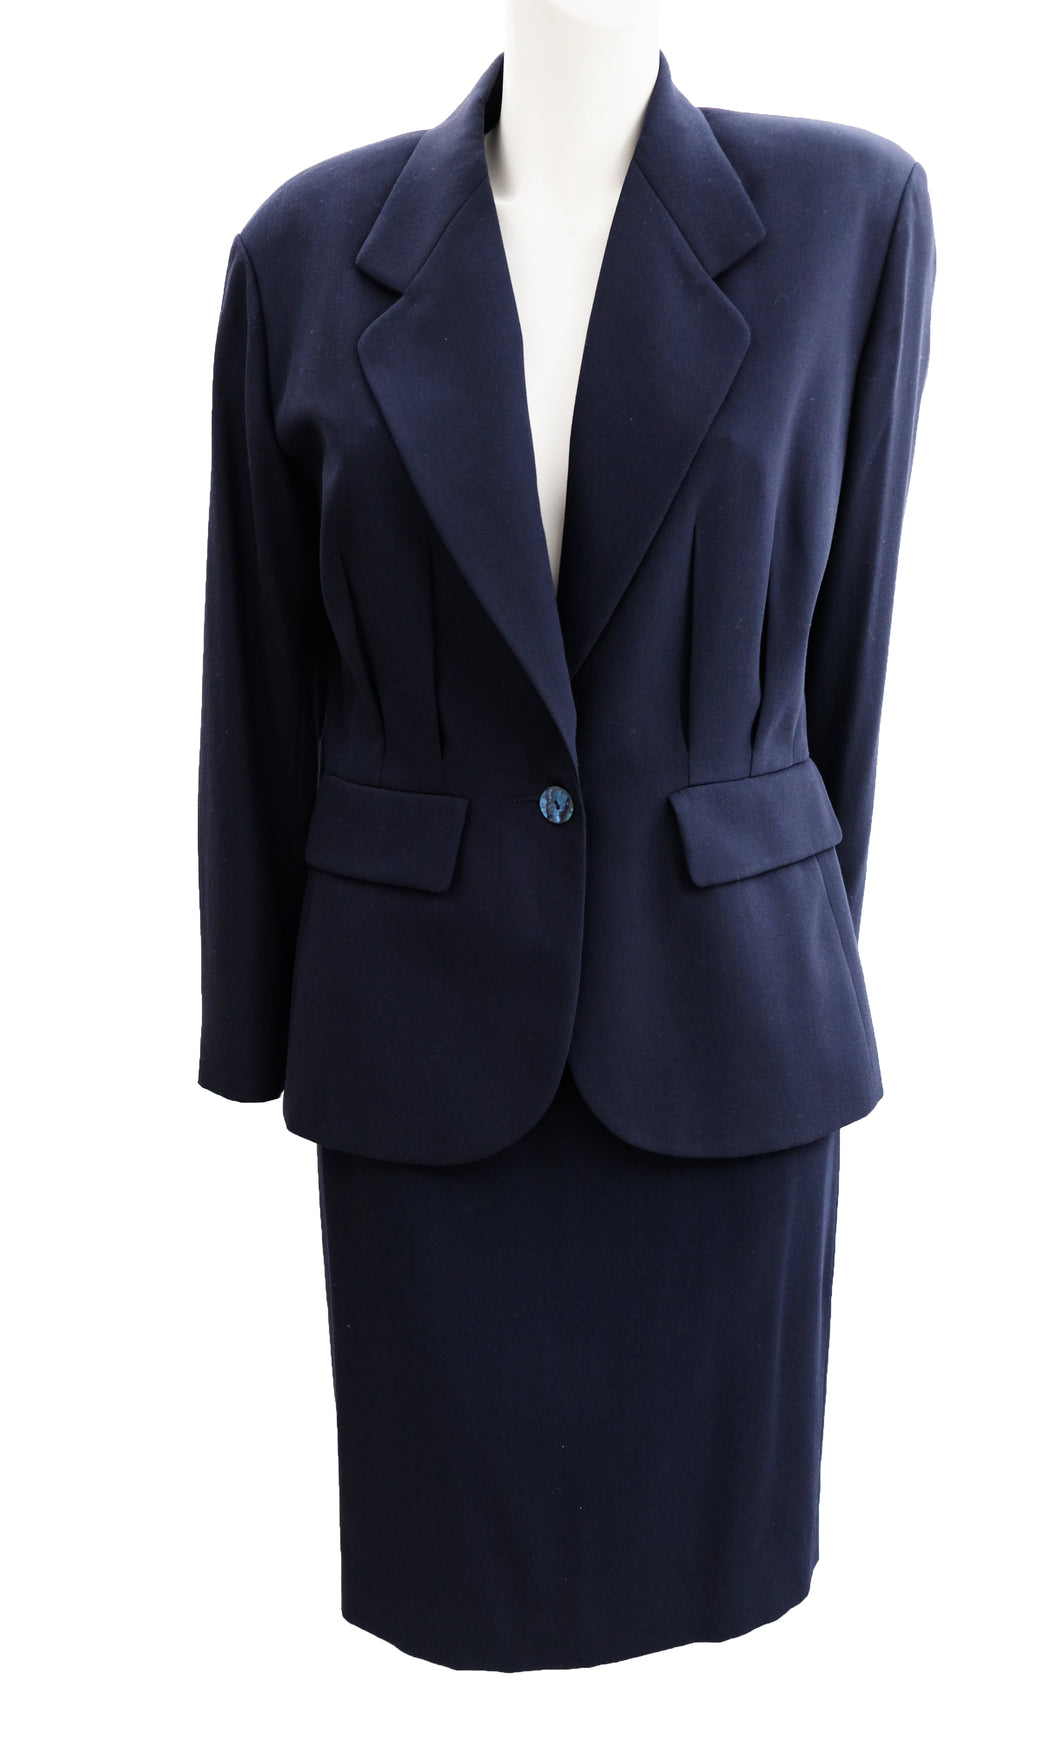 Kenzo Vintage Tailored Skirt Suit in Navy Wool, UK10-12